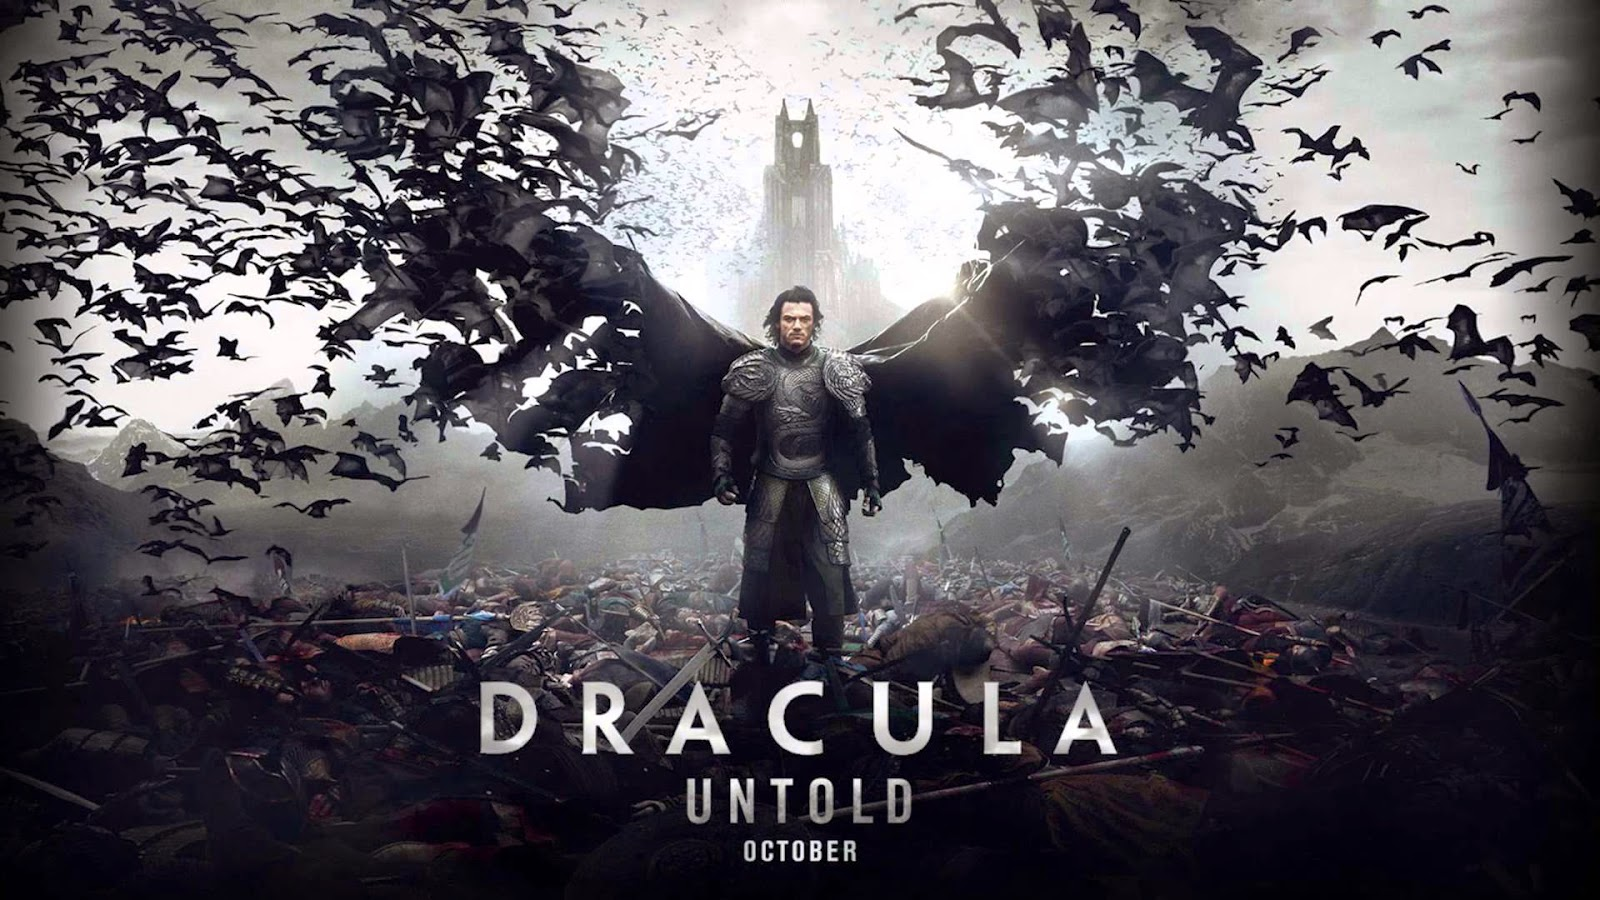 Dracula Untold 2014 Hollywood Movie official trailer